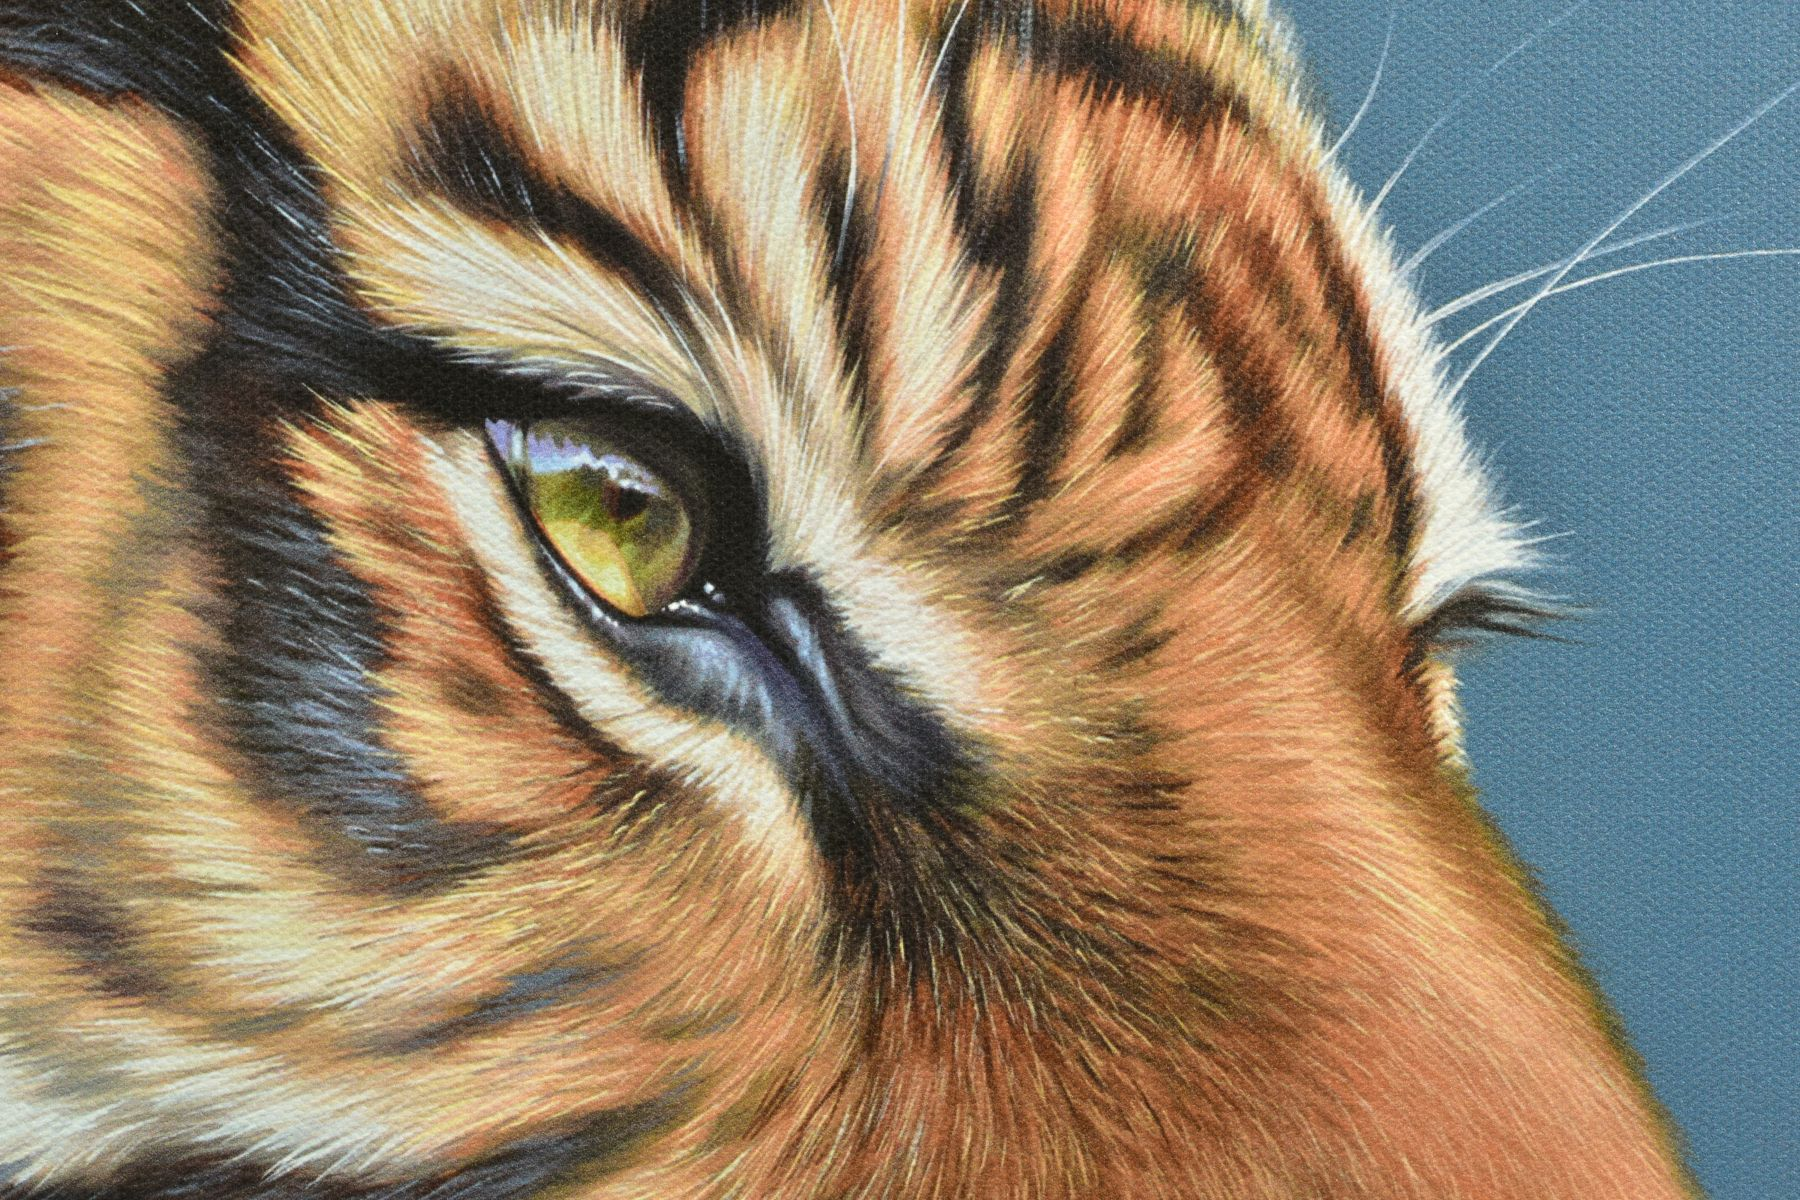 DARRYN EGGLETON (SOUTH AFRICA 1981), 'The Sentinel', an artist proof print of a Tiger, 16/20, signed - Image 3 of 6